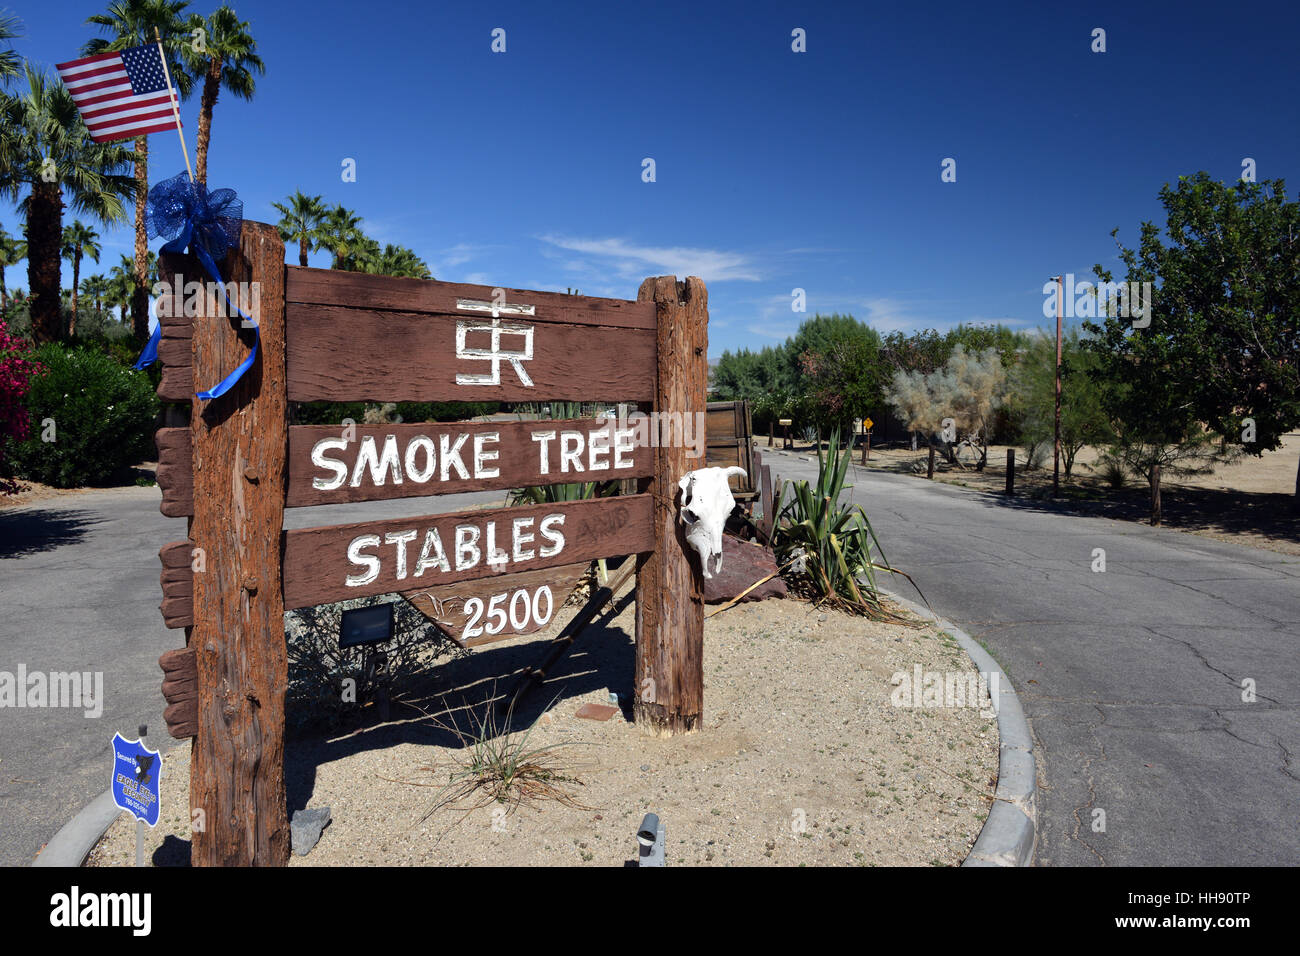 The Entrance to Smoke Tree Stables in Palm Springs, California, USA - Stock Image